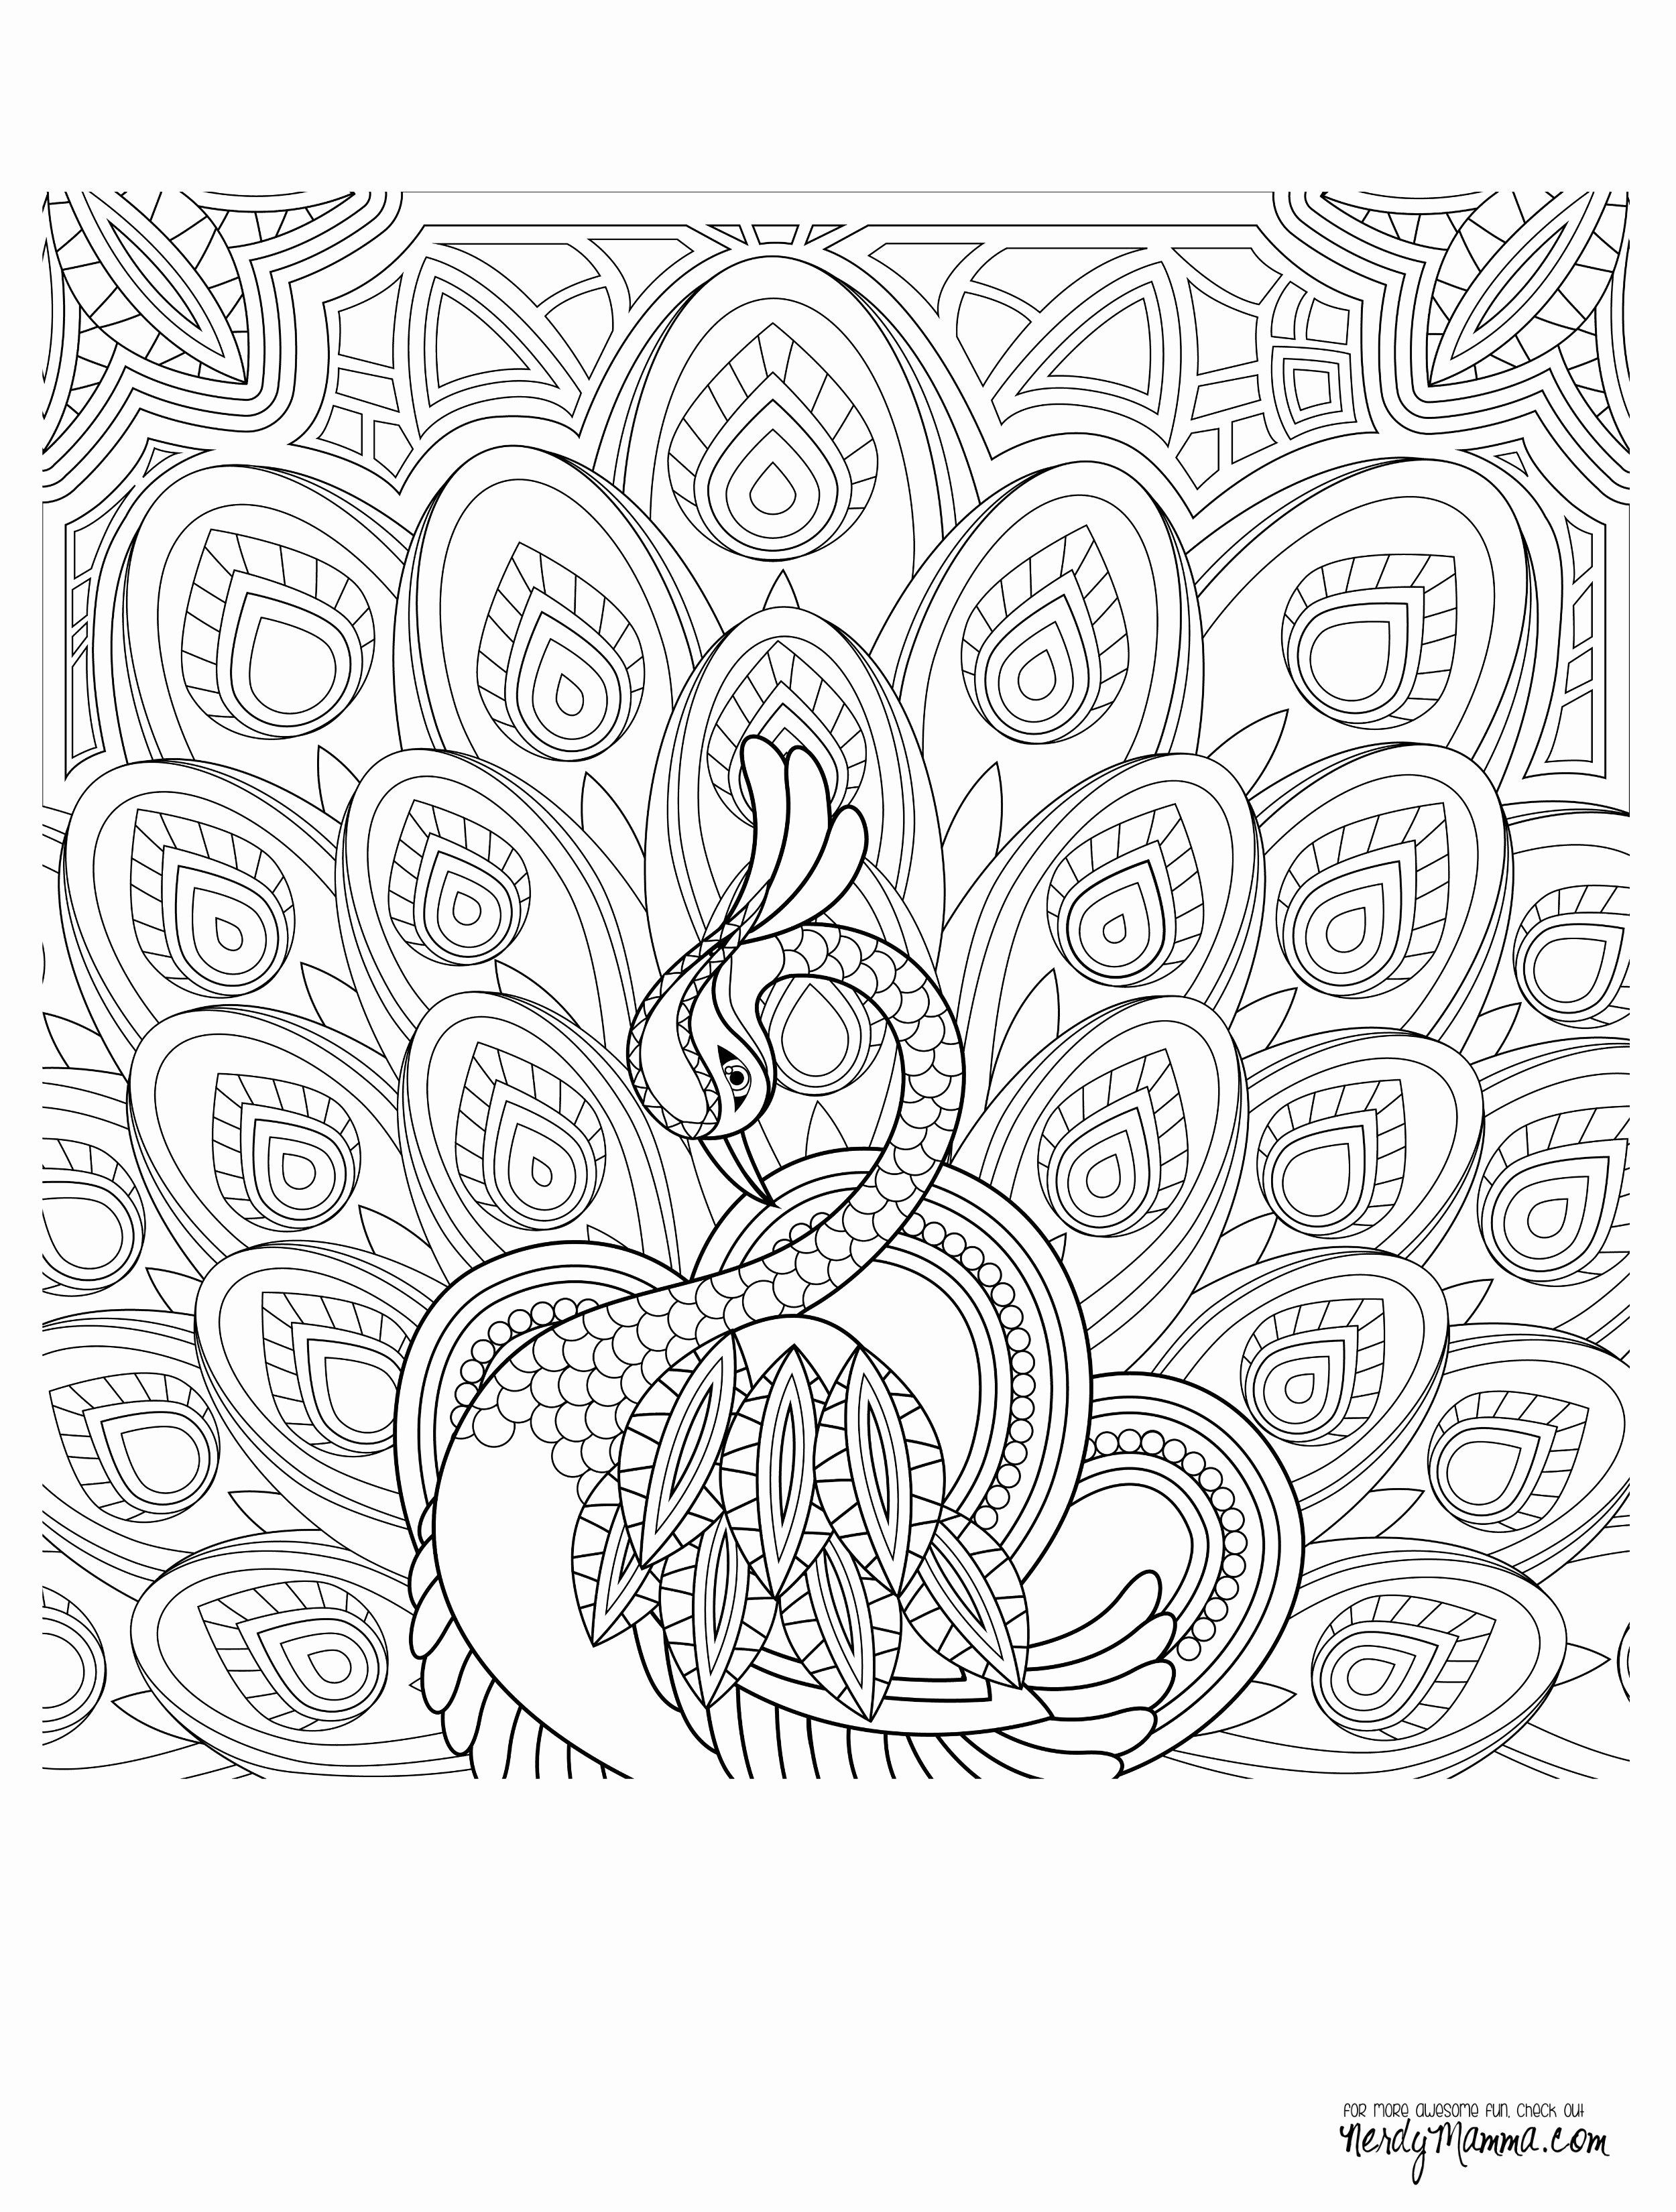 skeleton head coloring pages Download-Free Printable Coloring Pages For Adults Best Awesome Coloring Page For Adult Od Kids Simple Floral Heart With 12-n